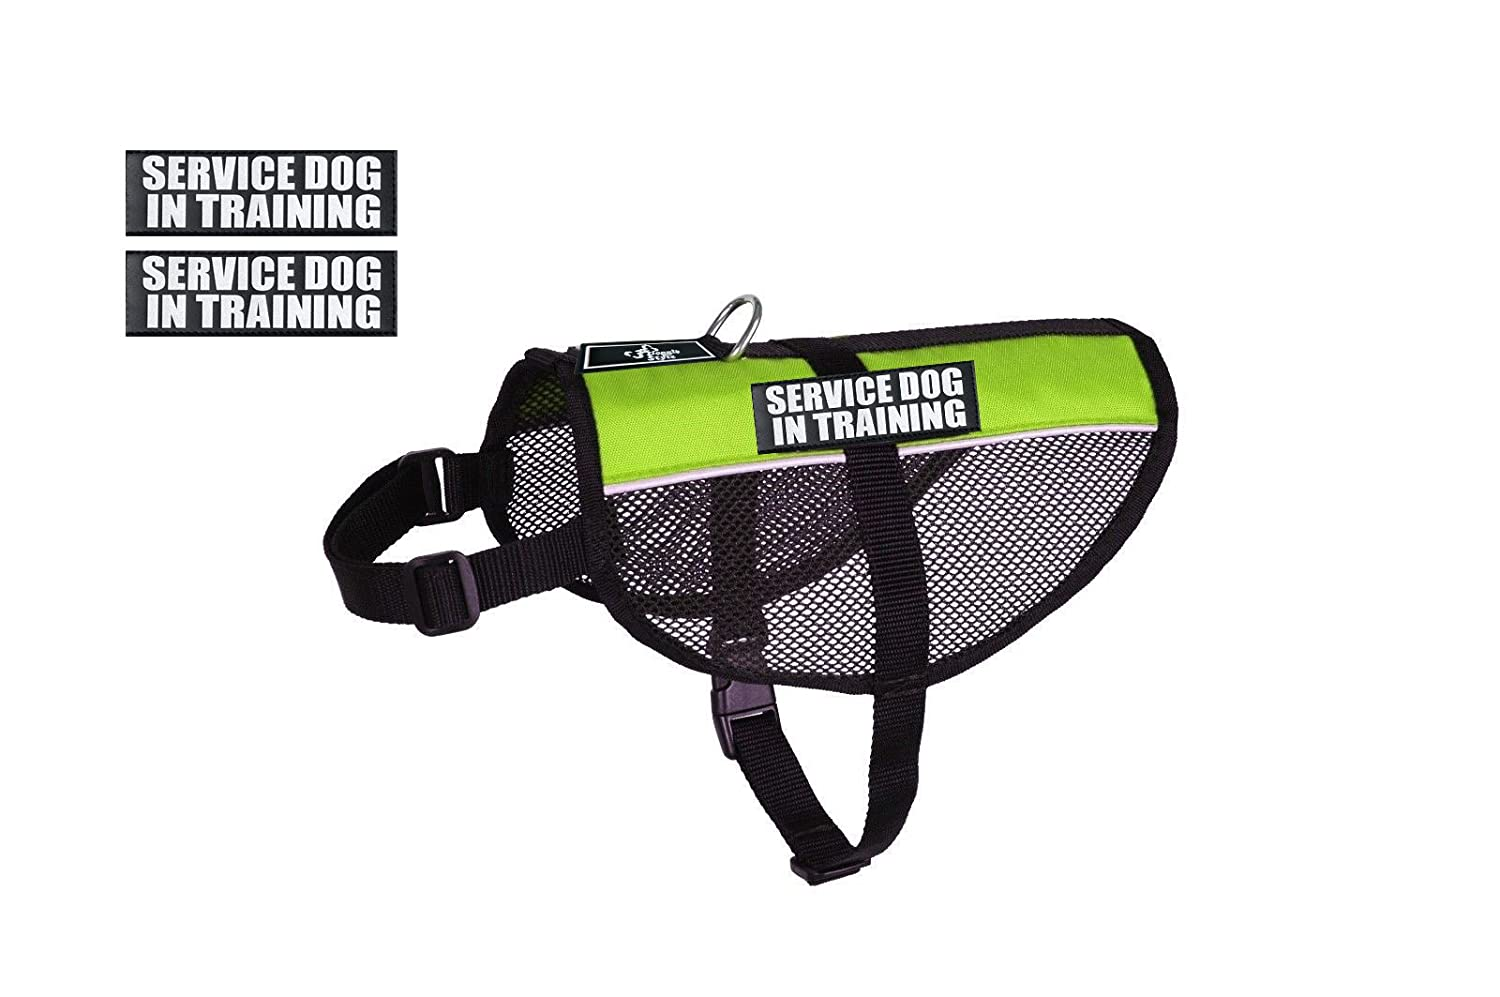 Lime Green Girth 15-20\ Lime Green Girth 15-20\ Service Dog in Training mesh Vest Dog Harness Cool Comfort. Purchase Comes 2 Reflective Service Dog in Training Patches. Be Sure to Measure Your Dog Before Ordering